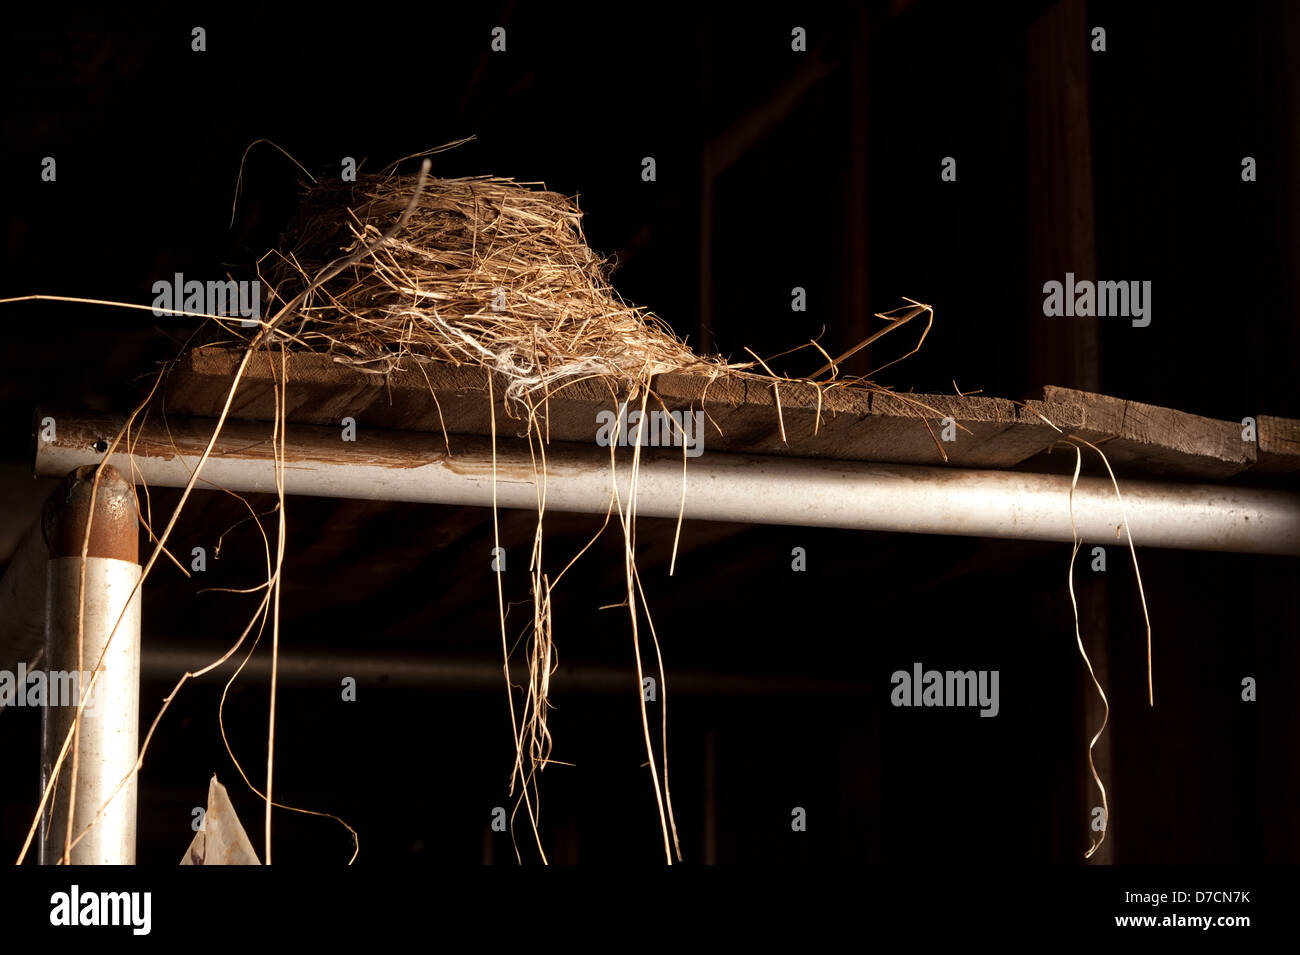 A birds nest located in a strange place. - Stock Image